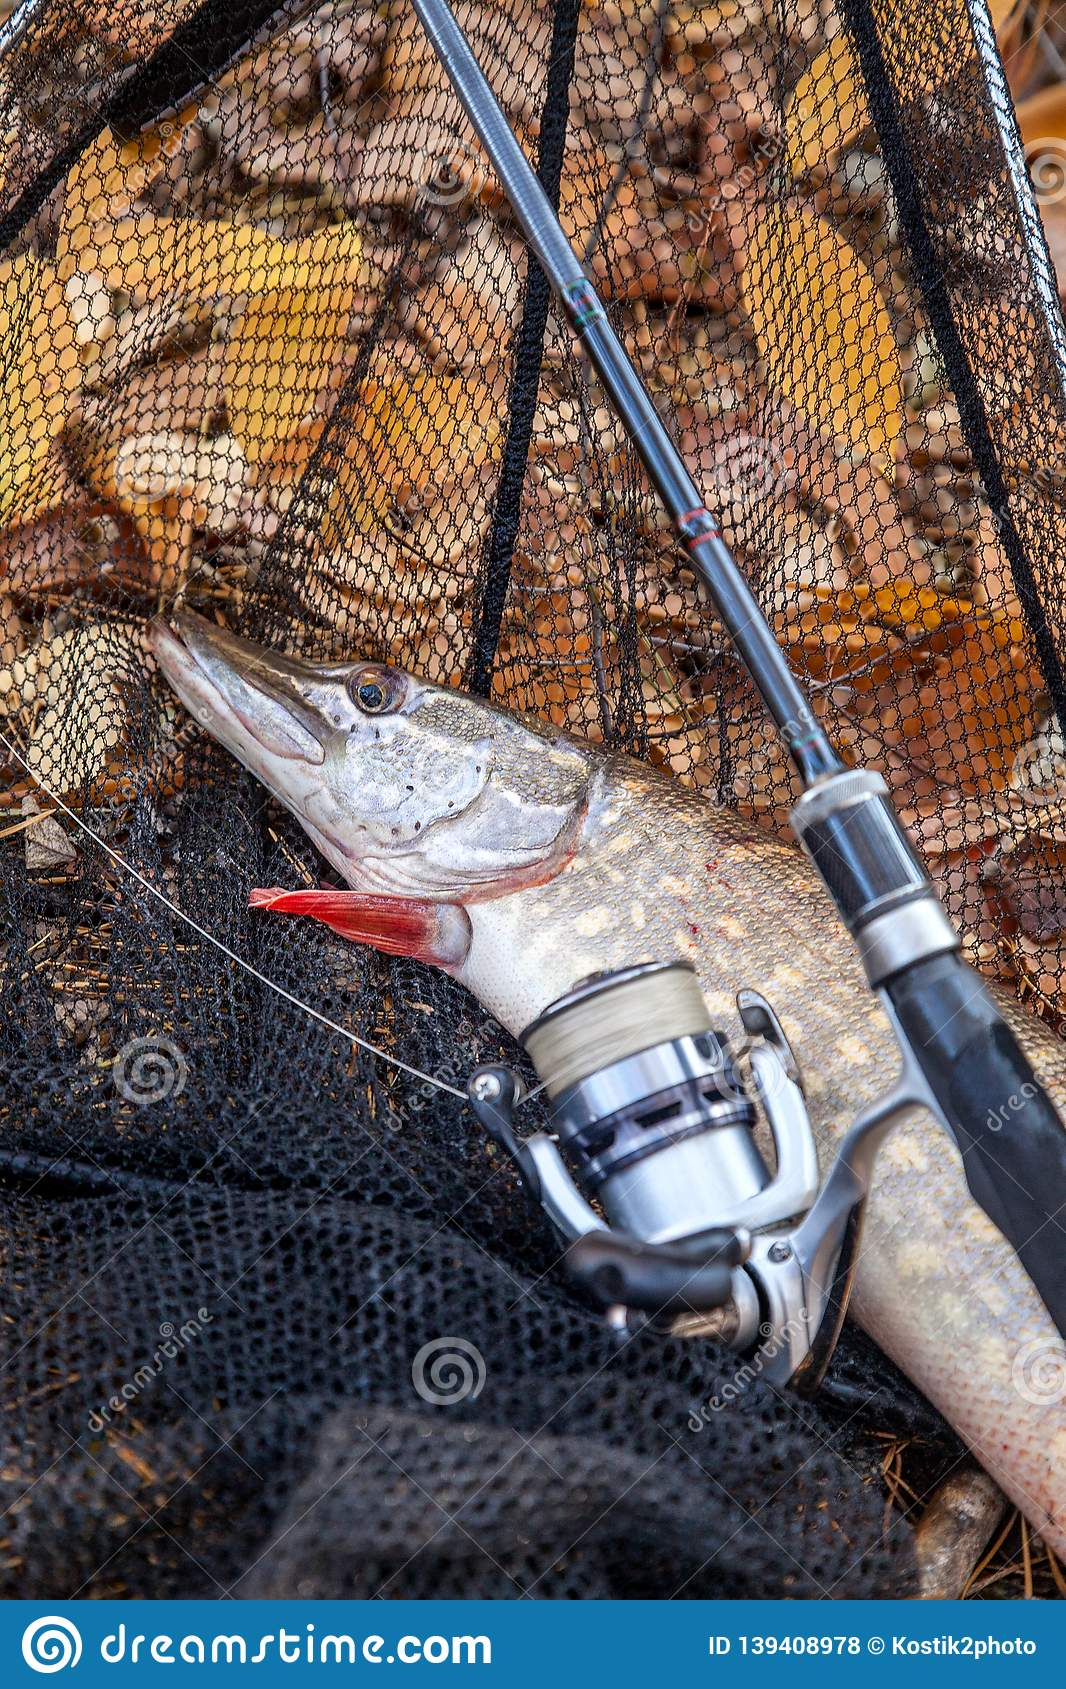 Freshwater pike fish. Freshwater pike fish, fishing rod with reel and black landing net as background